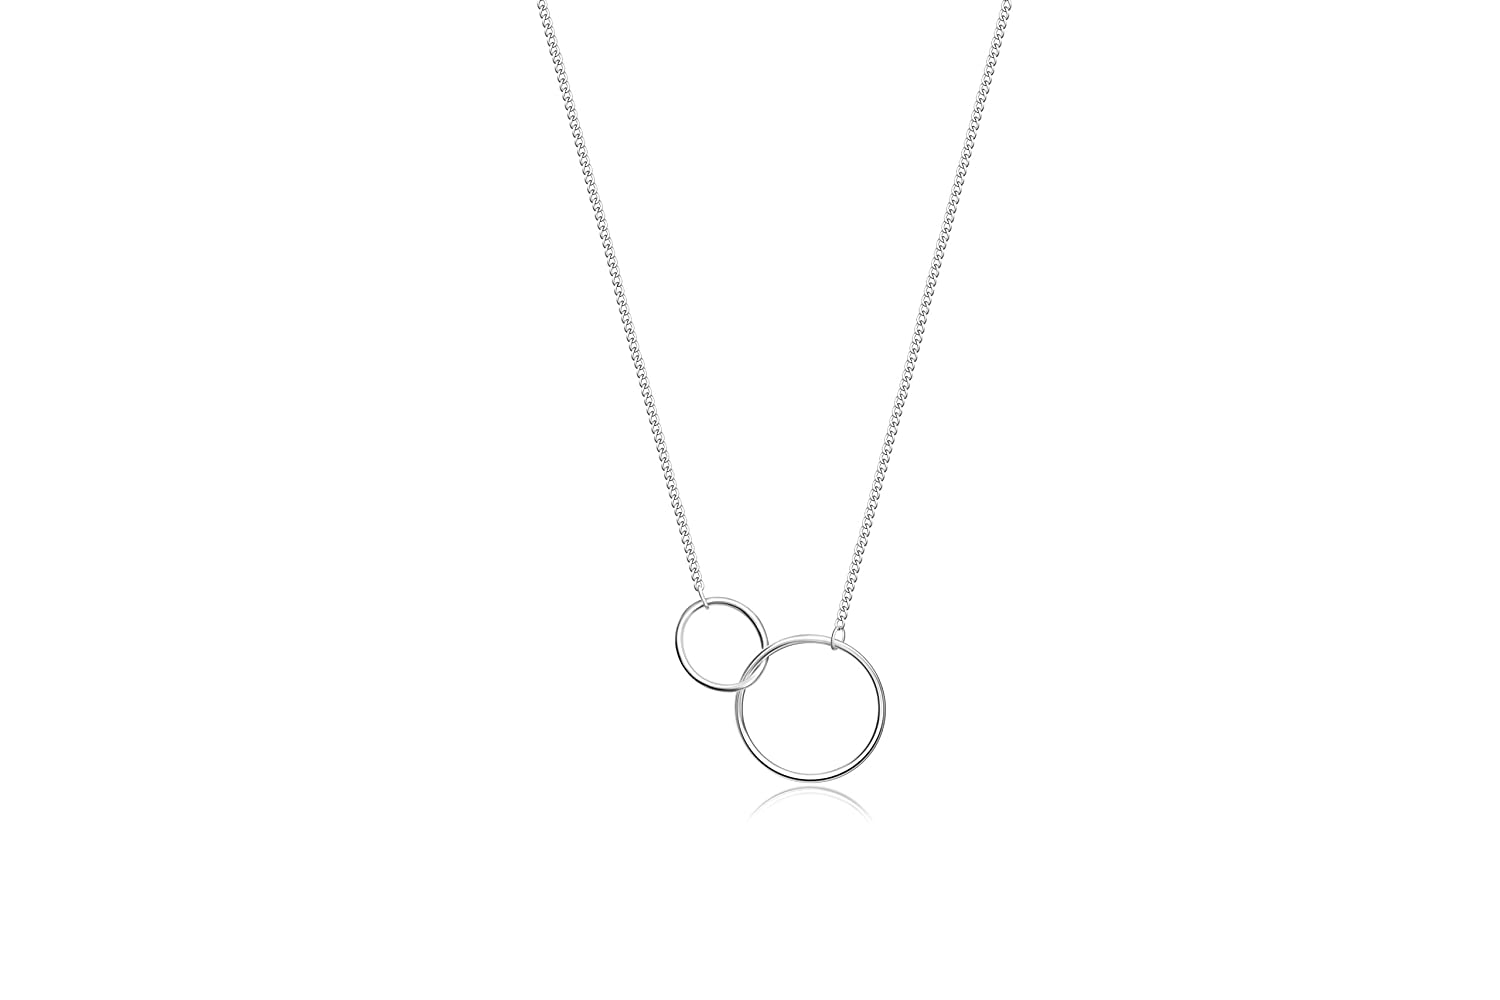 JUPITSON Sister Necklace 925 Sterling Silver Interlocking Circles Necklace